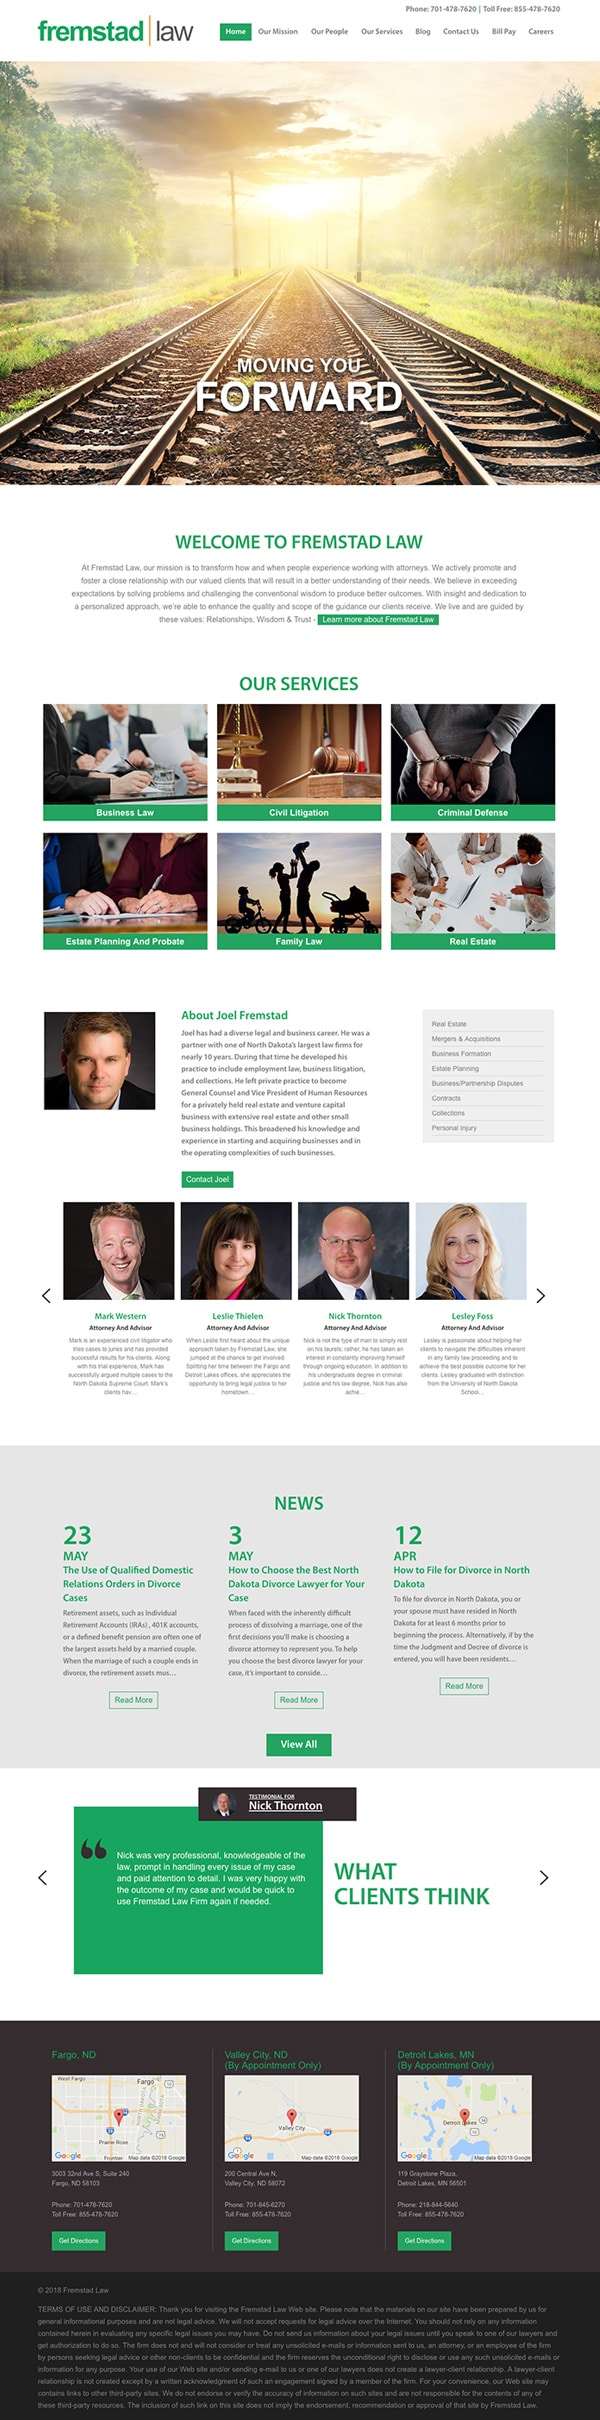 Law Firm Website for Fremstad Law